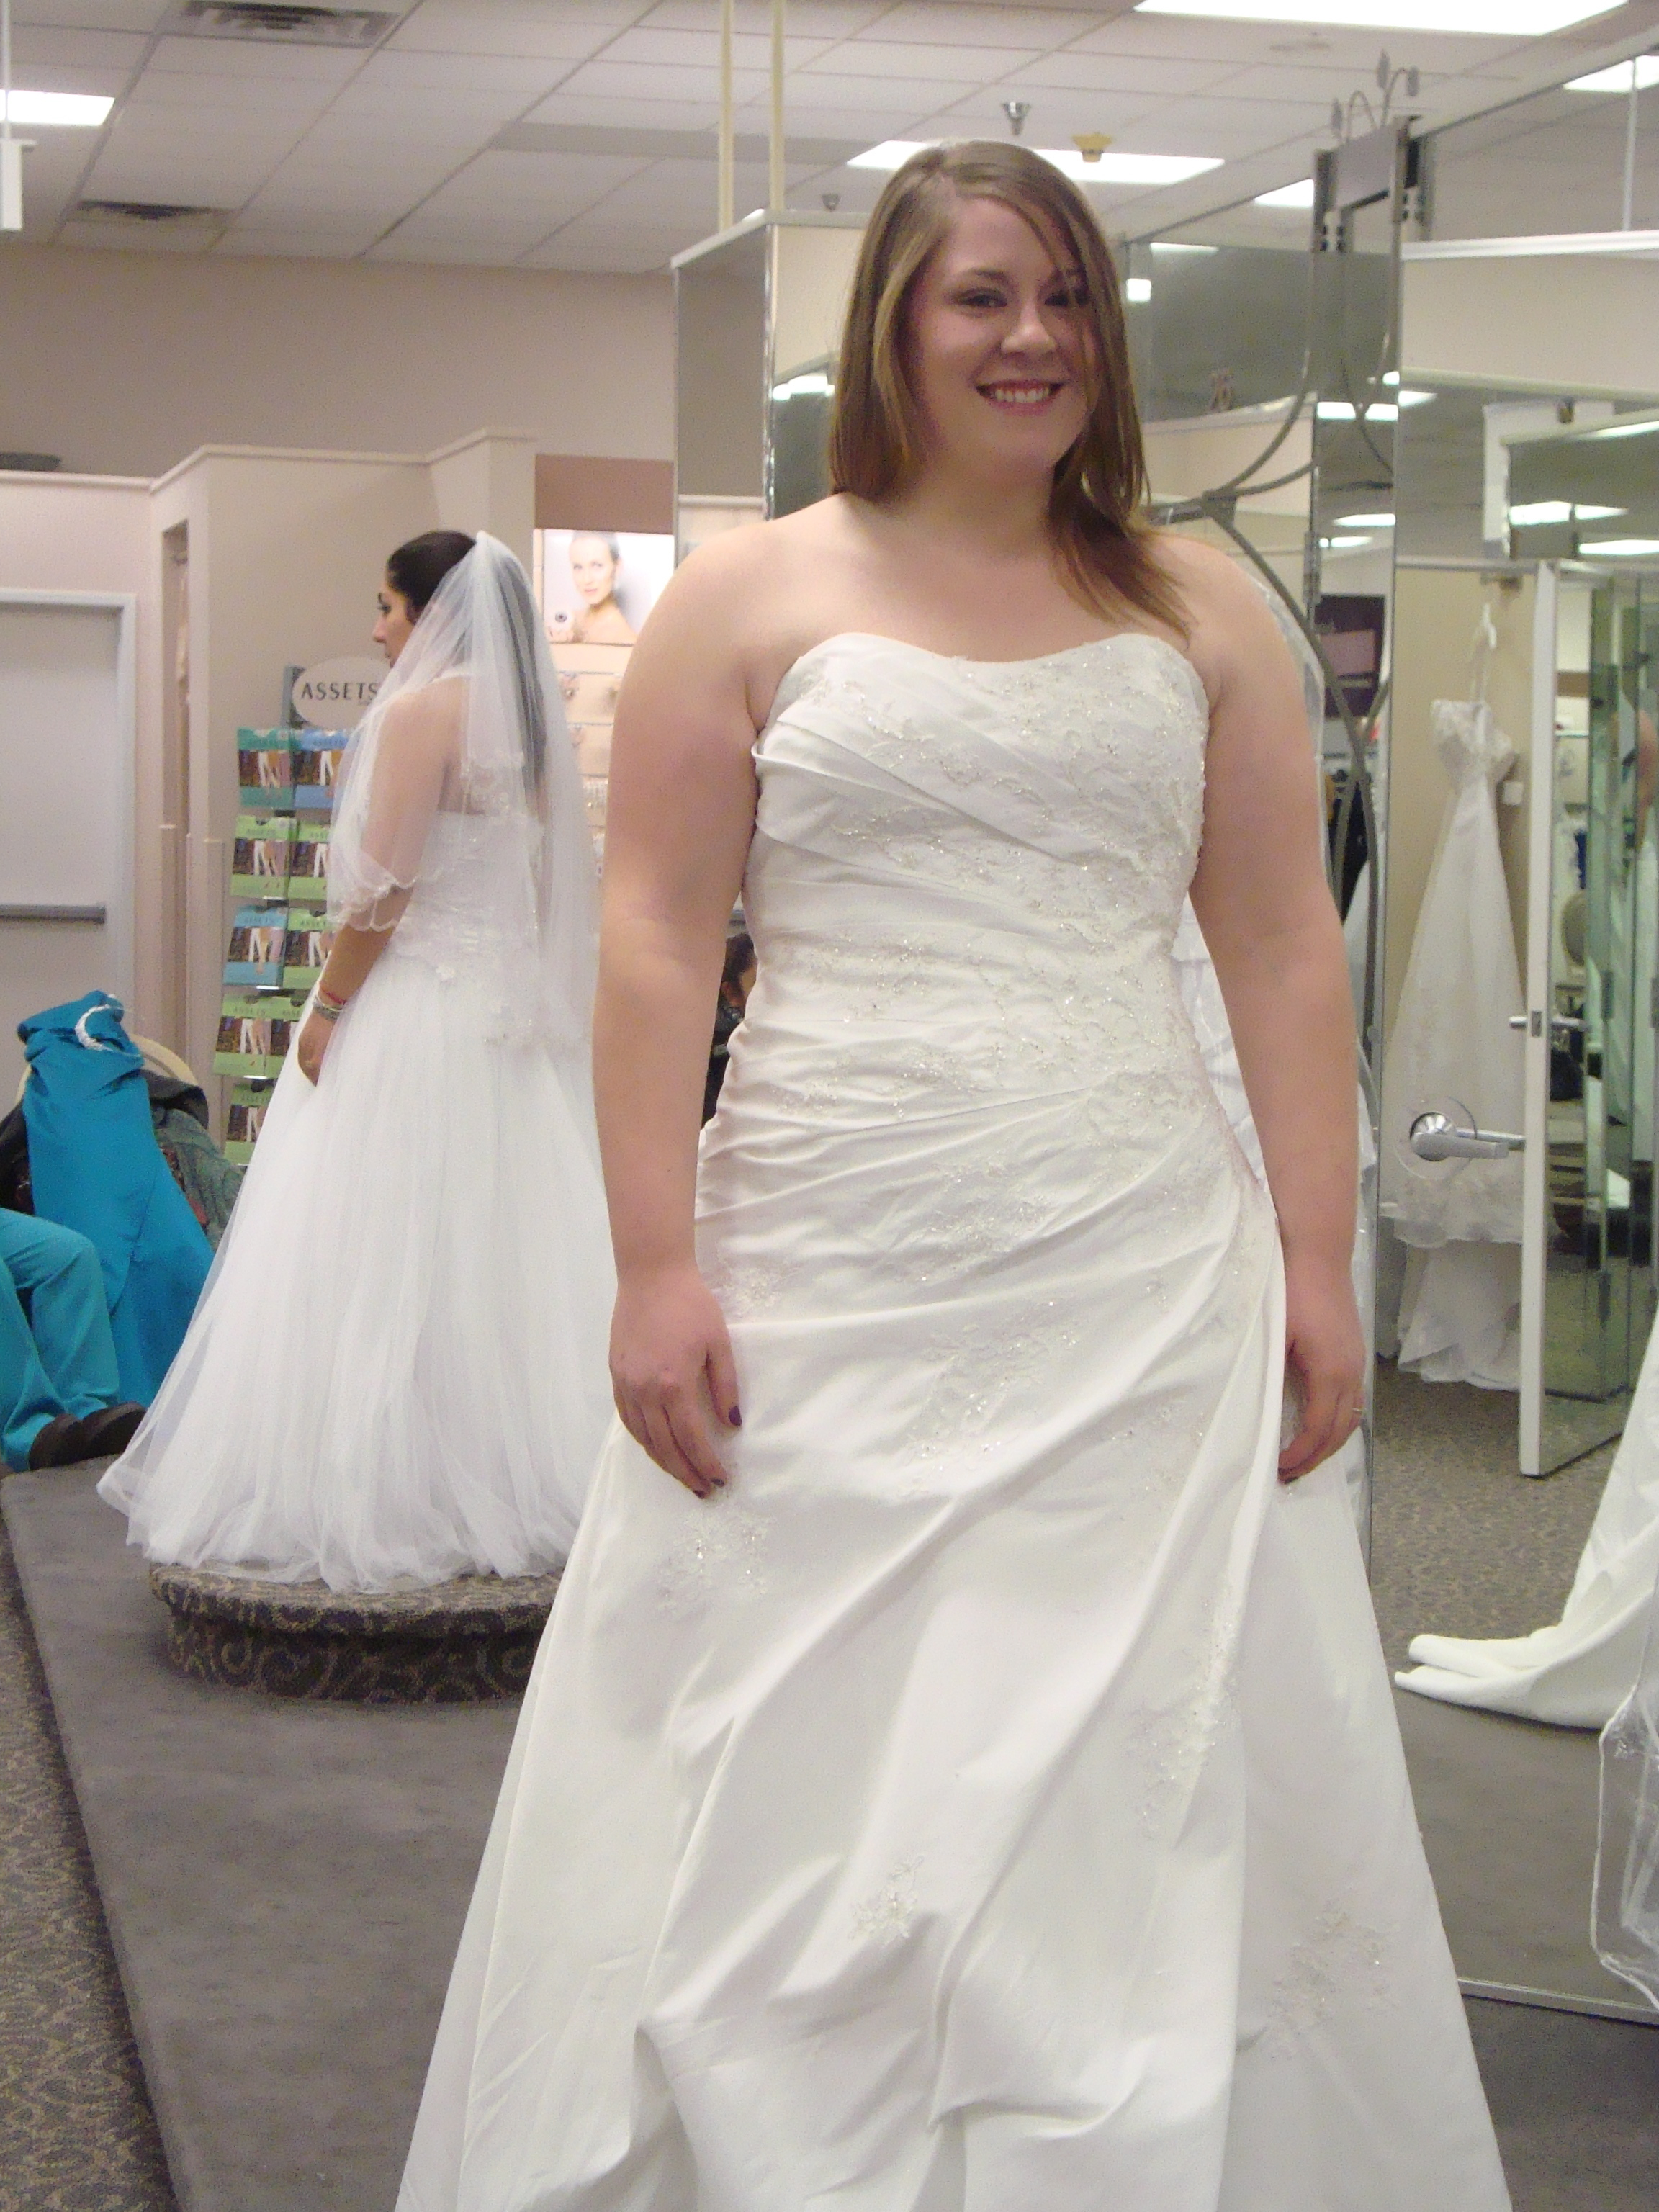 Fat brides in strapless dresses